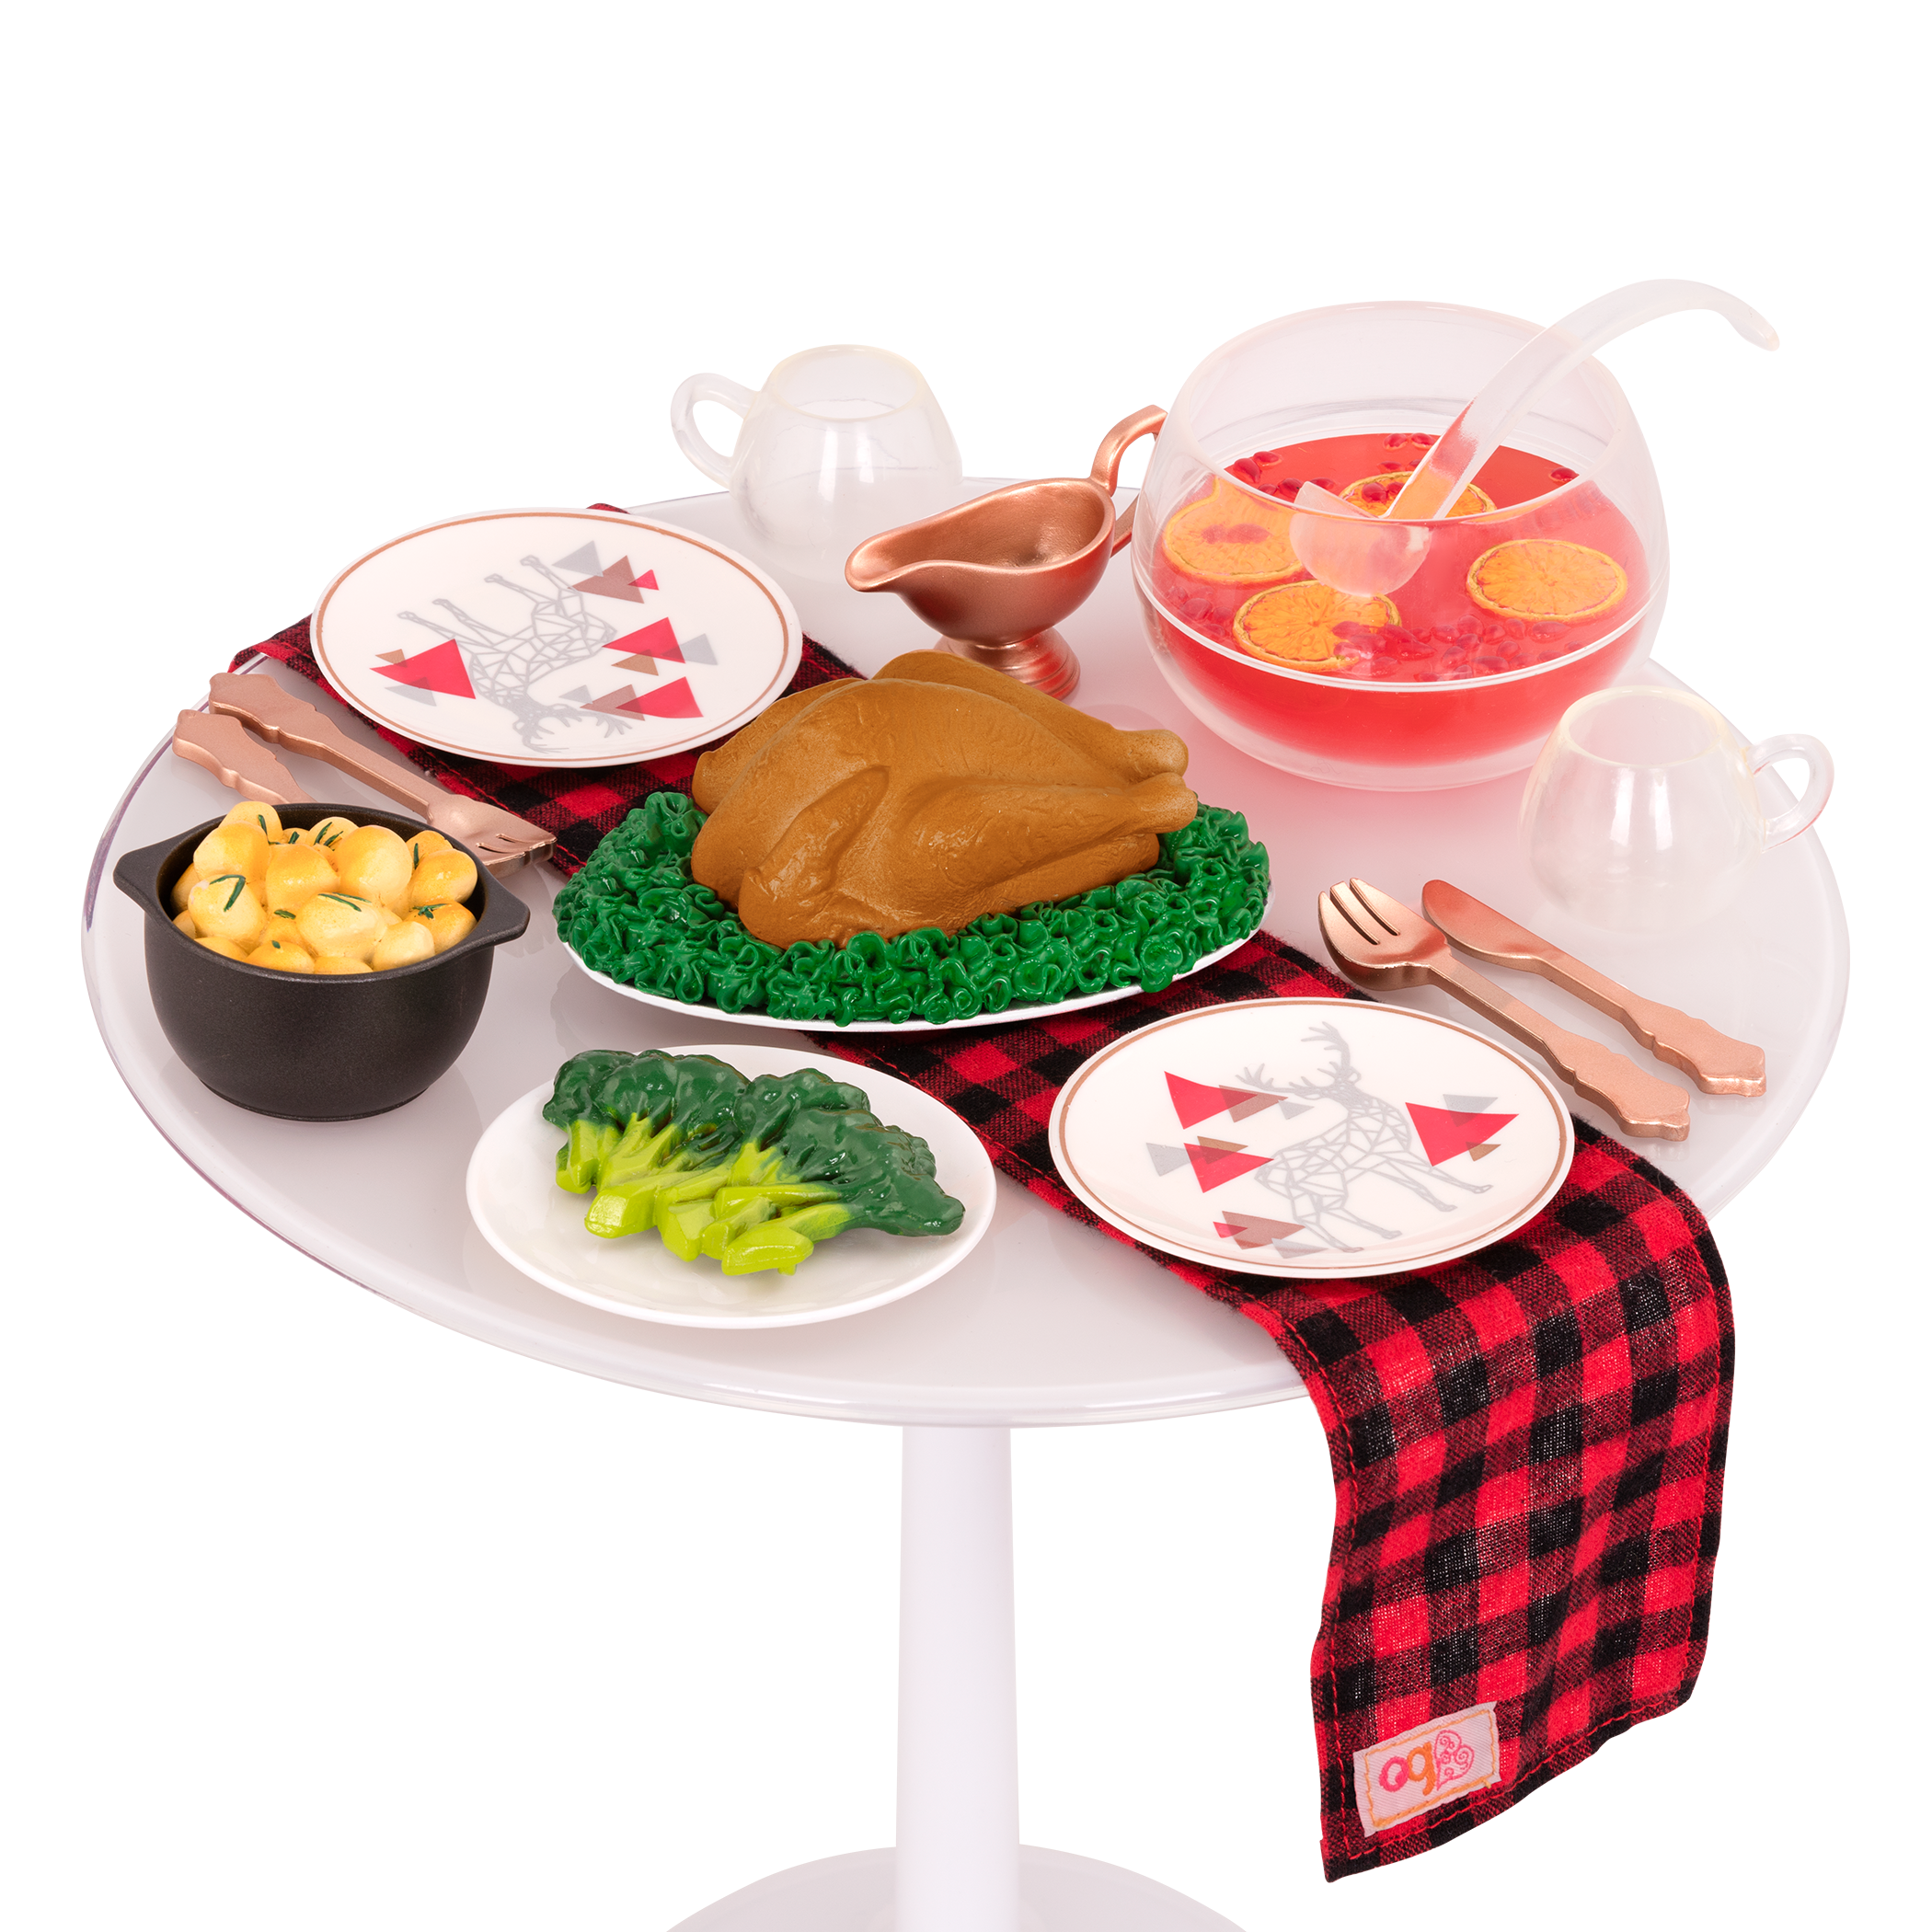 Festive Feast dinner set on table